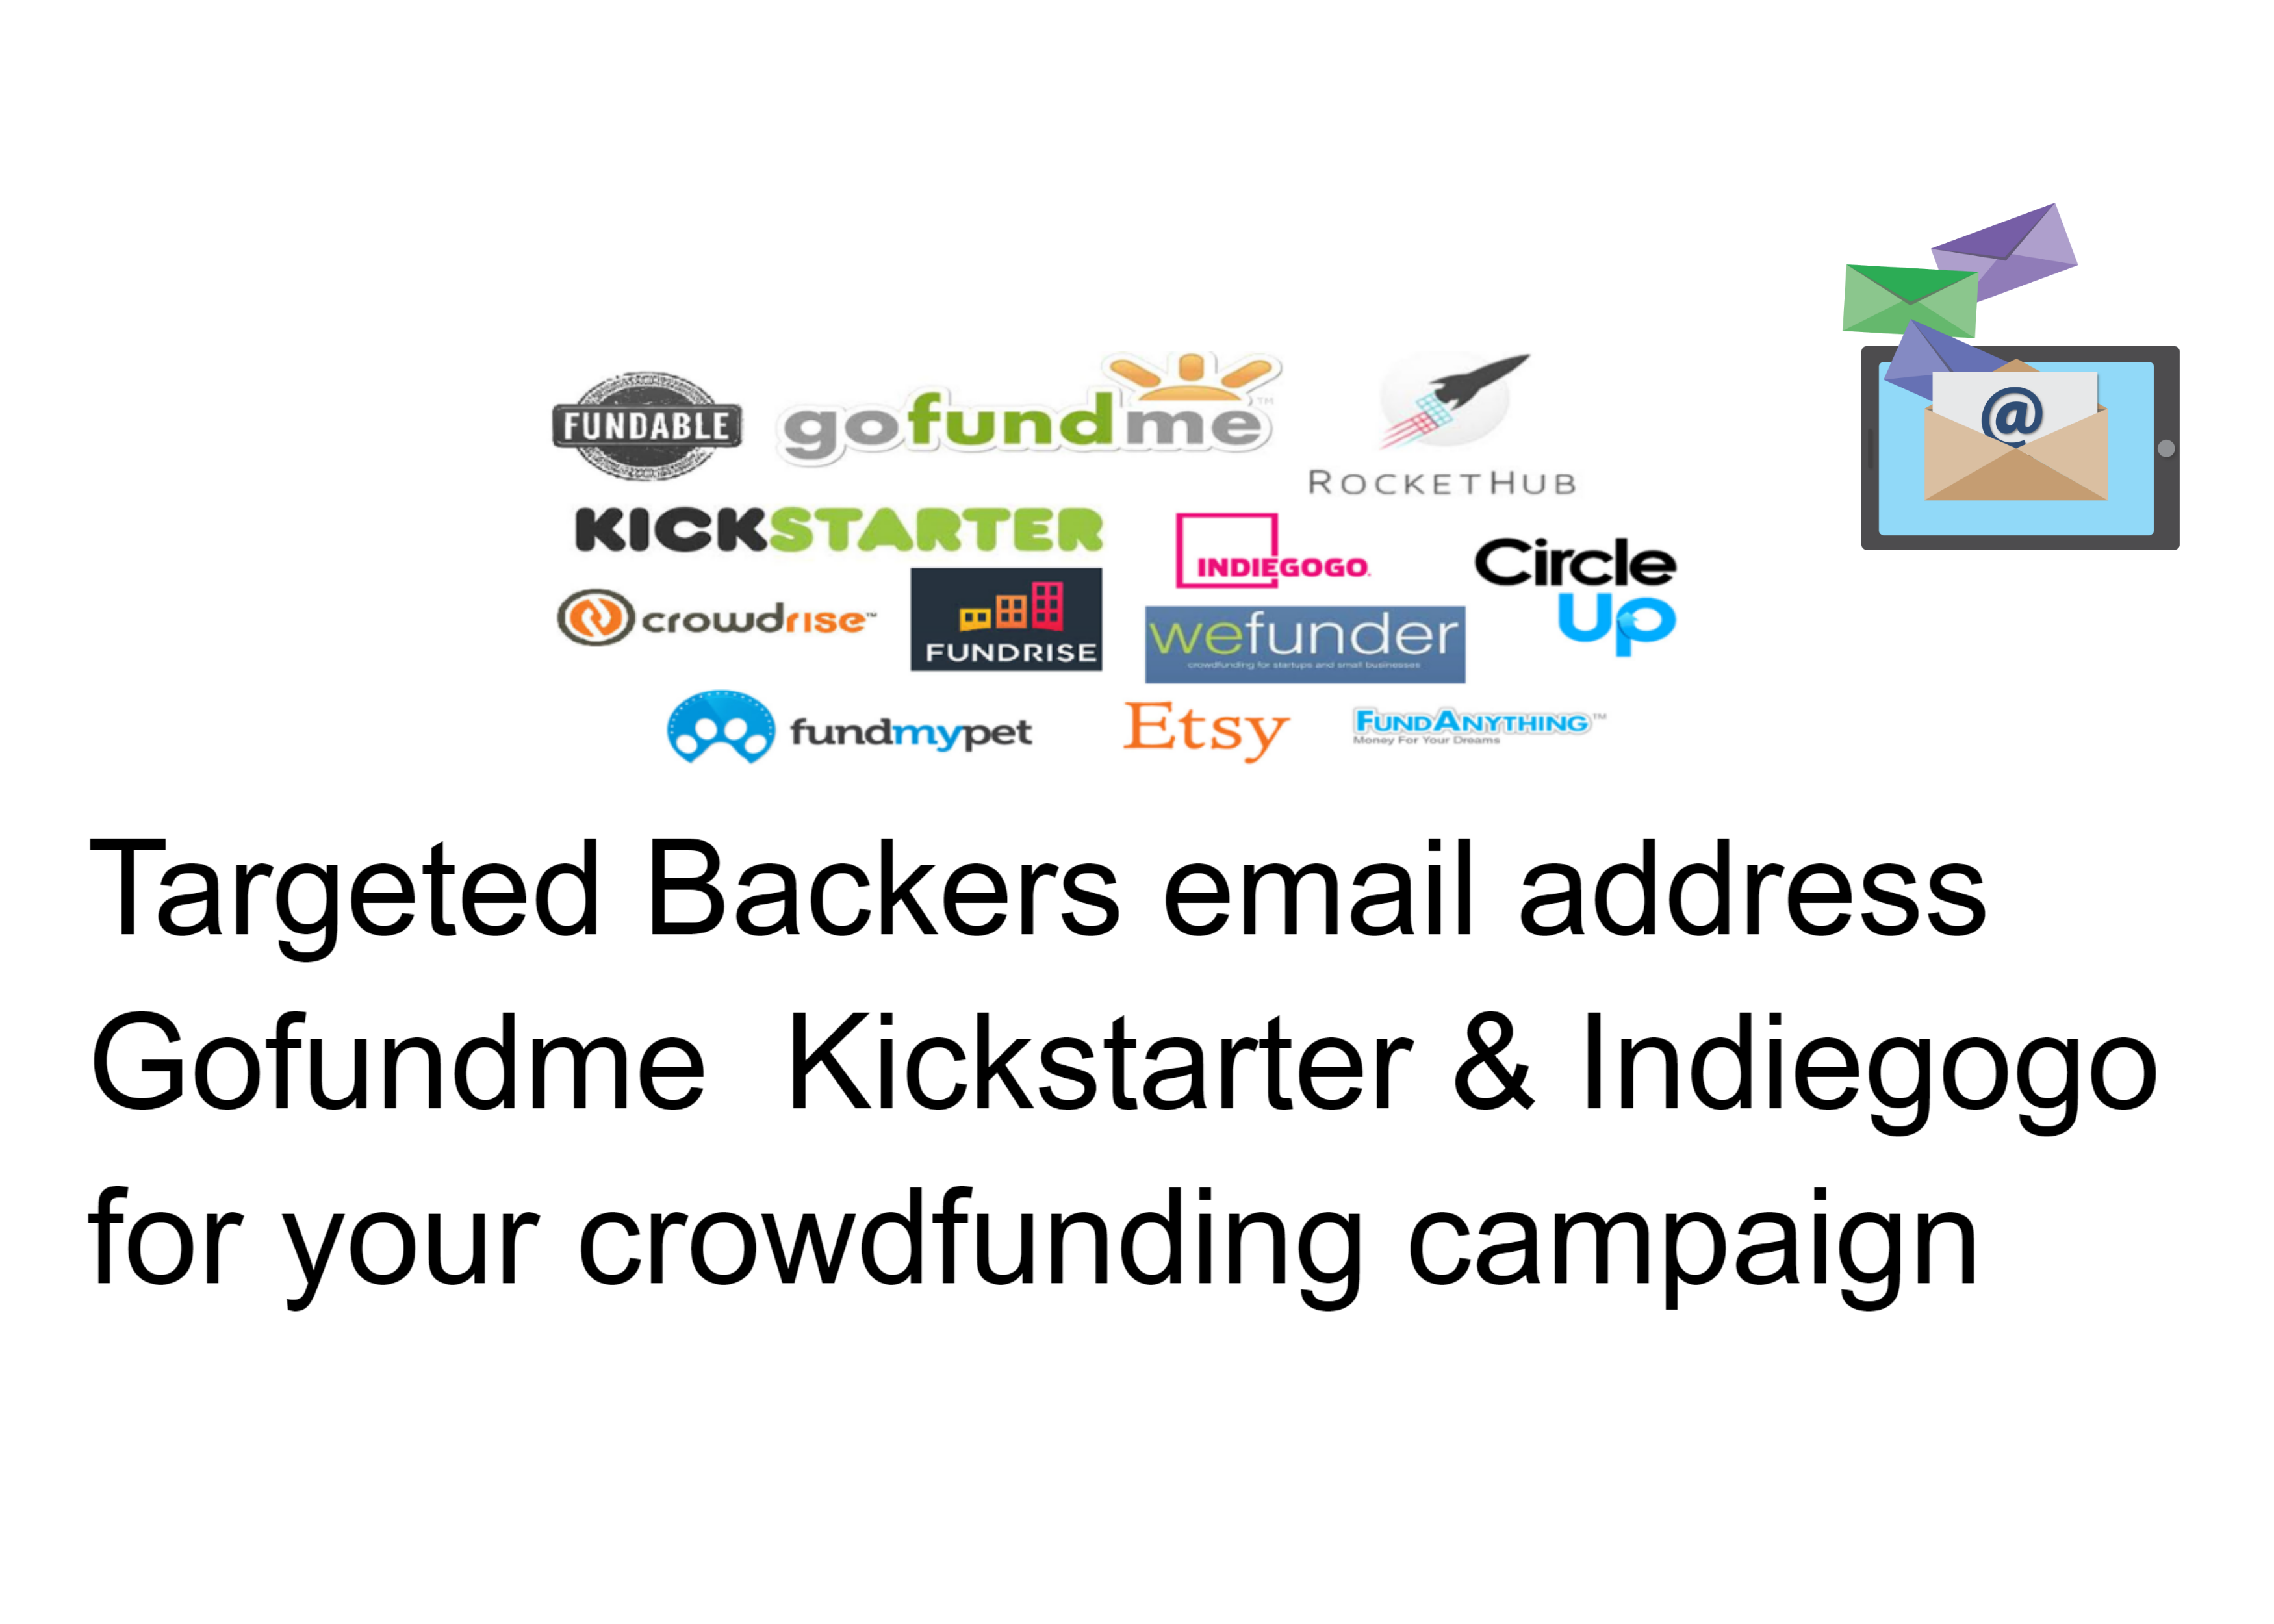 I will share Backers email address Gofundme Kickstarter,  Indiegogo for your crowdfunding campaign